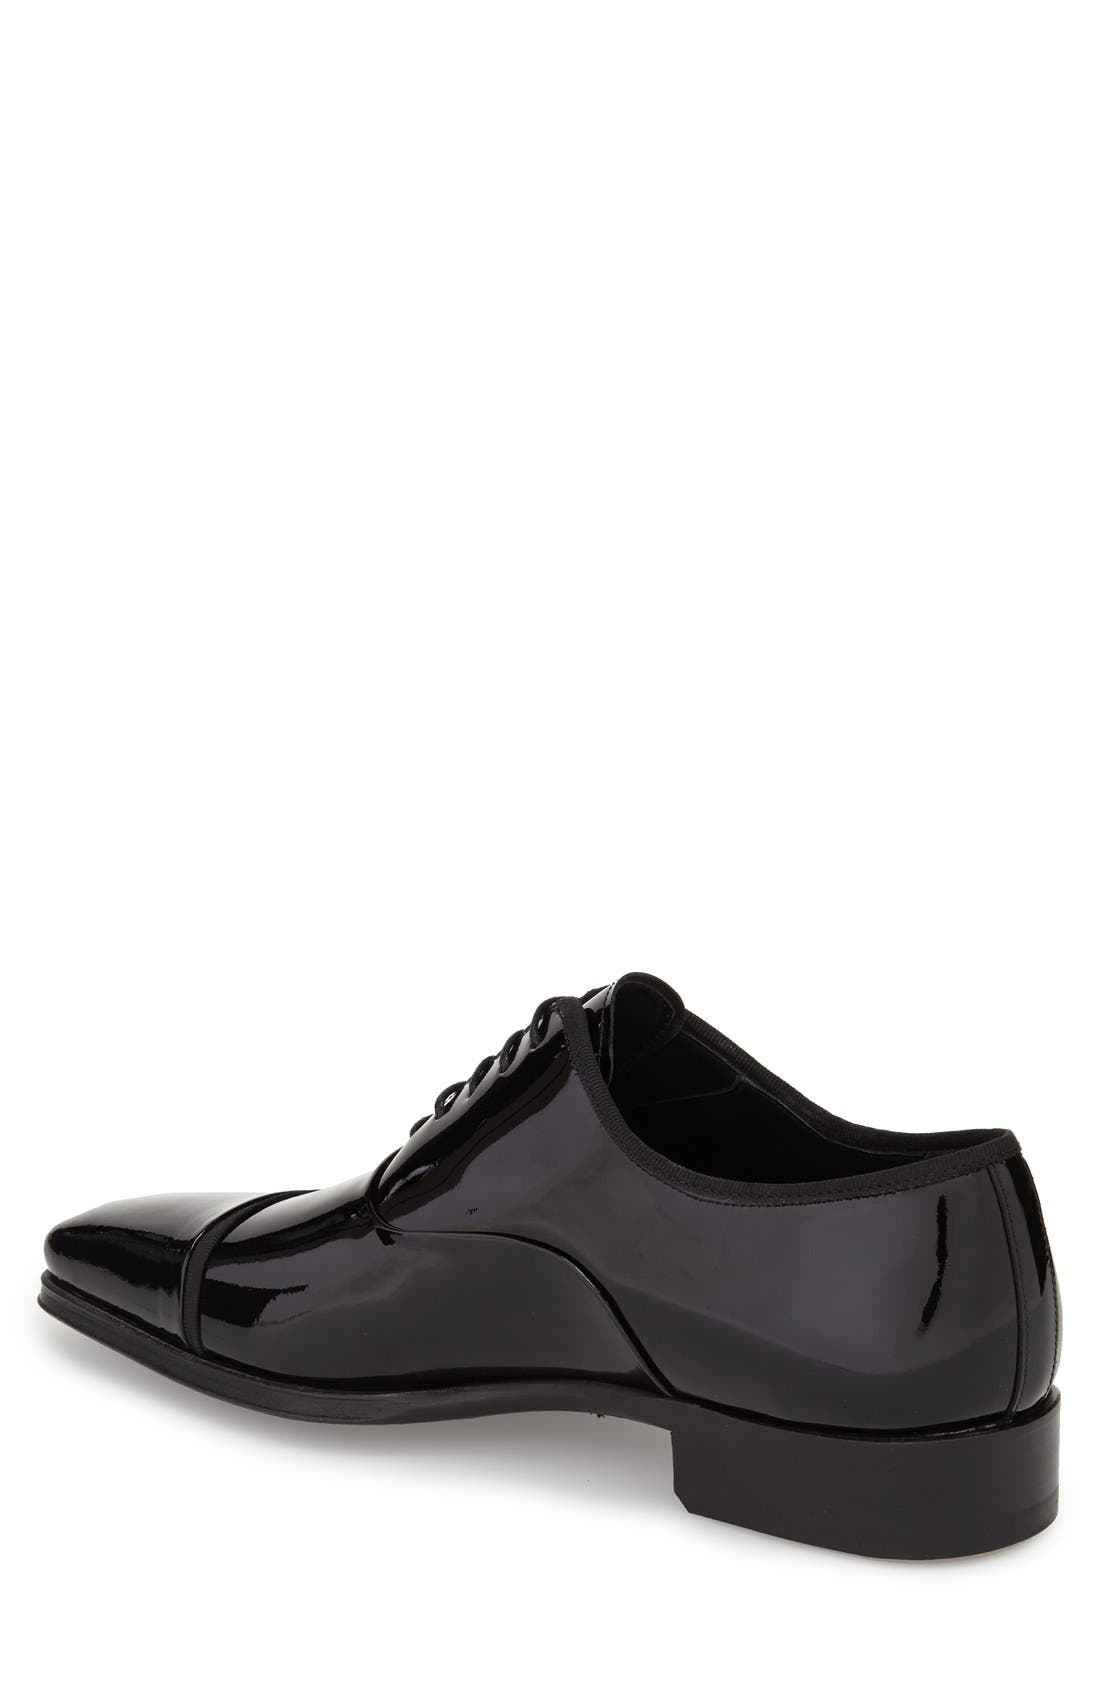 'Denali' Cap Toe Oxford,                             Alternate thumbnail 2, color,                             Black